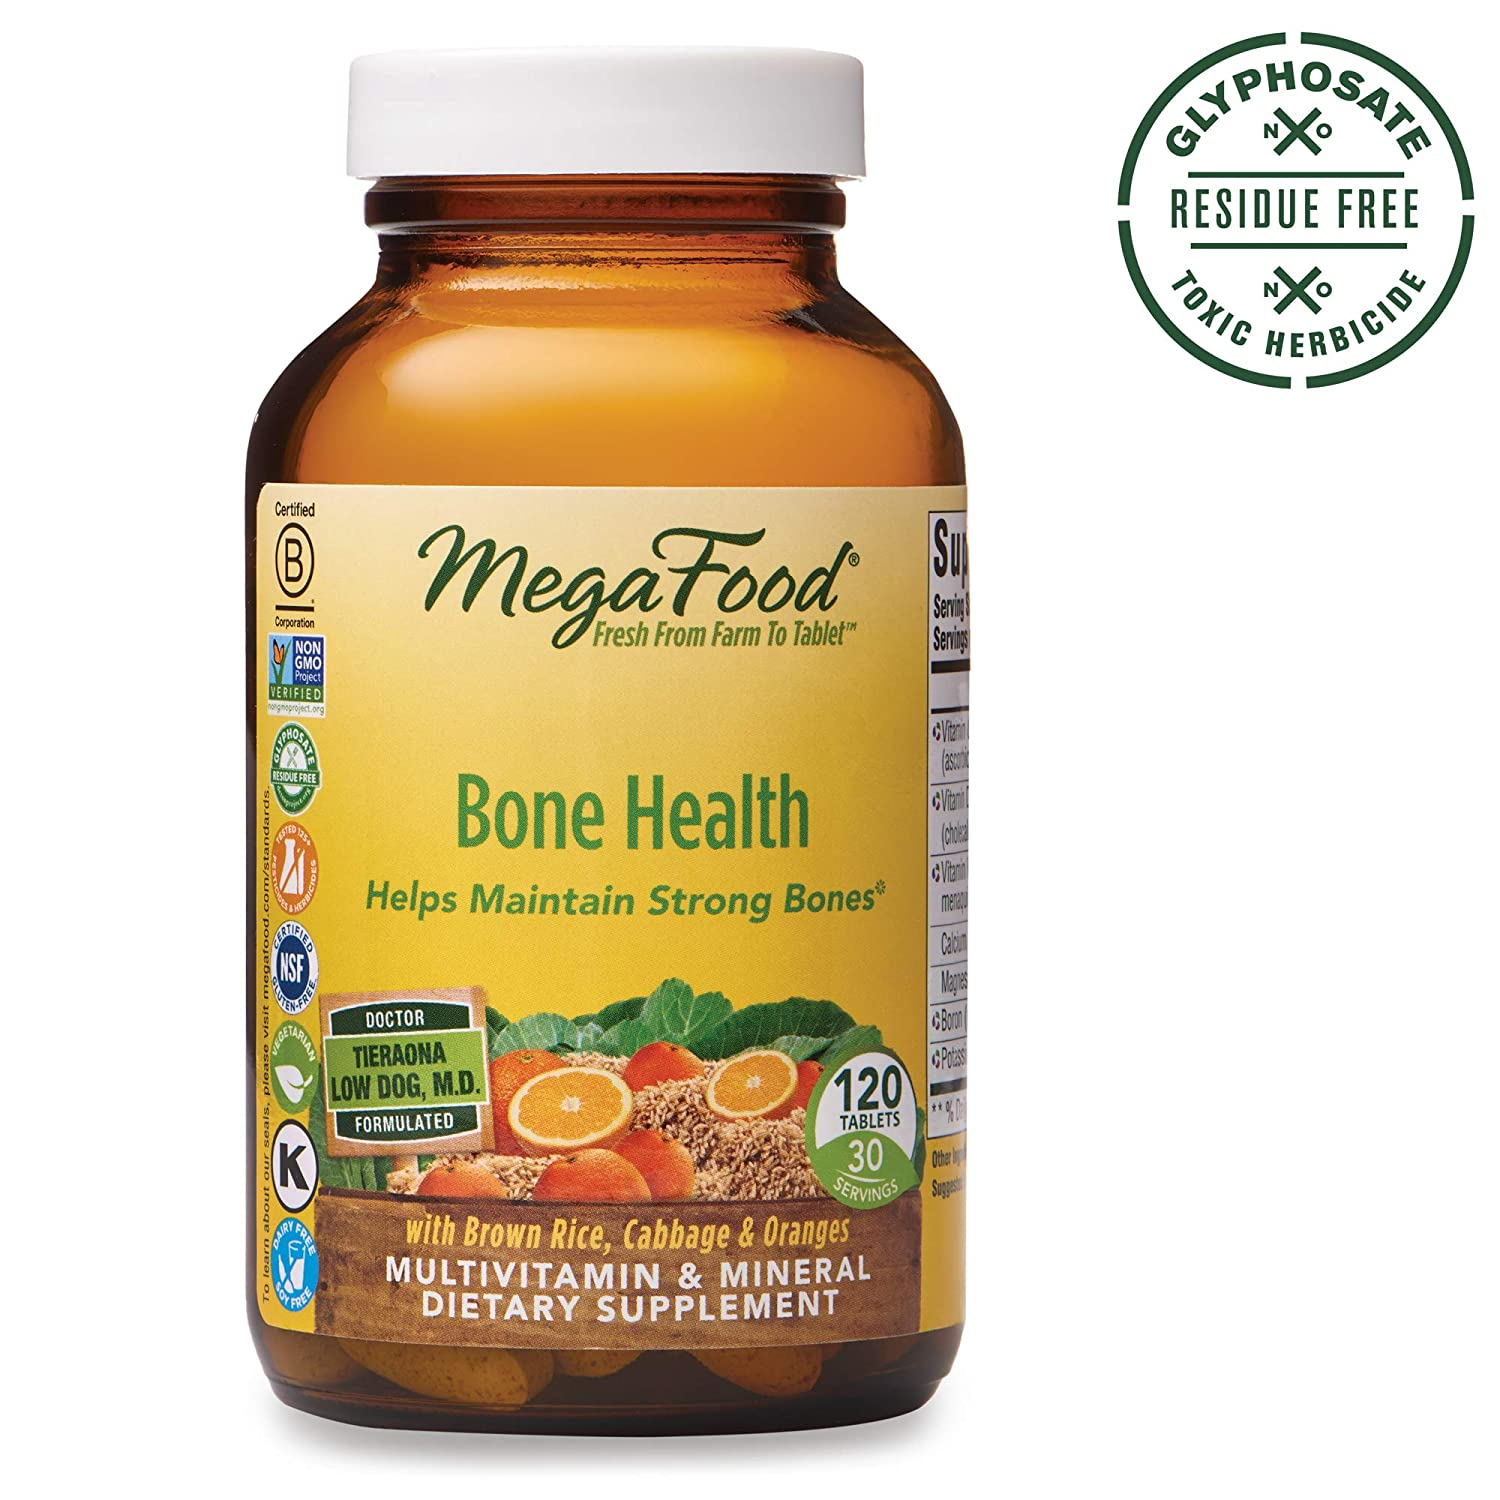 MegaFood, Bone Health, Helps Maintain Strong Bones, Multivitamin Supplement, Gluten Free, Vegetarian, 120 tablets 30 servings